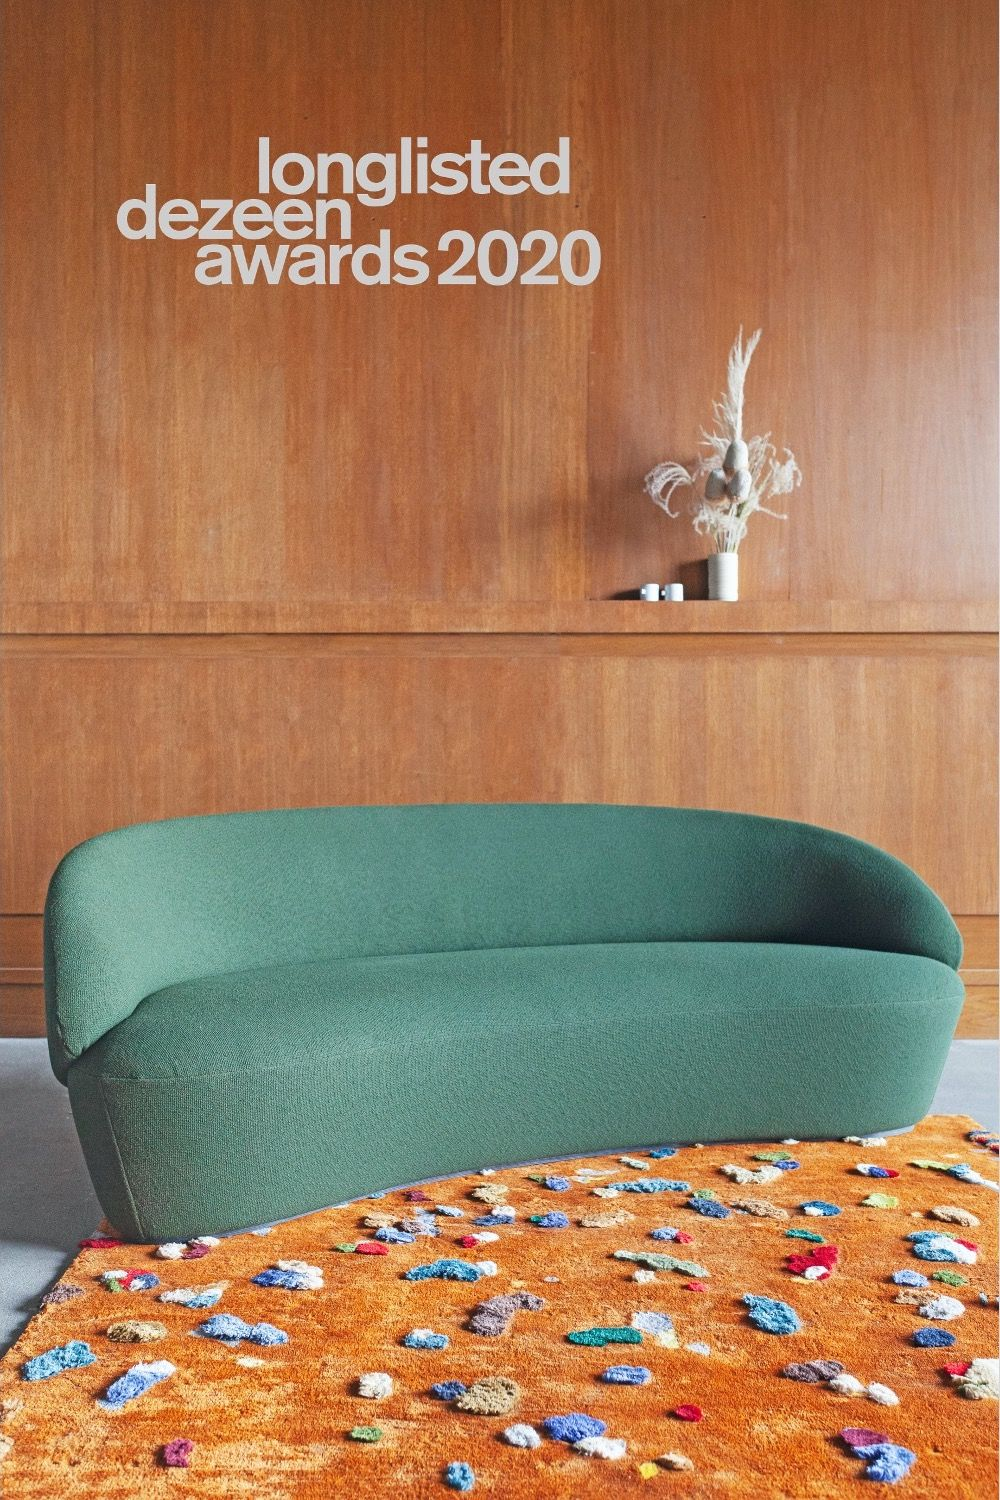 Lithuanian design brand EMKO is longlisted Dezeen Awards 2020. Agent France @DESIGNENVUE. #emkolt #dezeenawards2020 #dezeen #designrug #tapisdesign #sofacourbe #canapécourbe